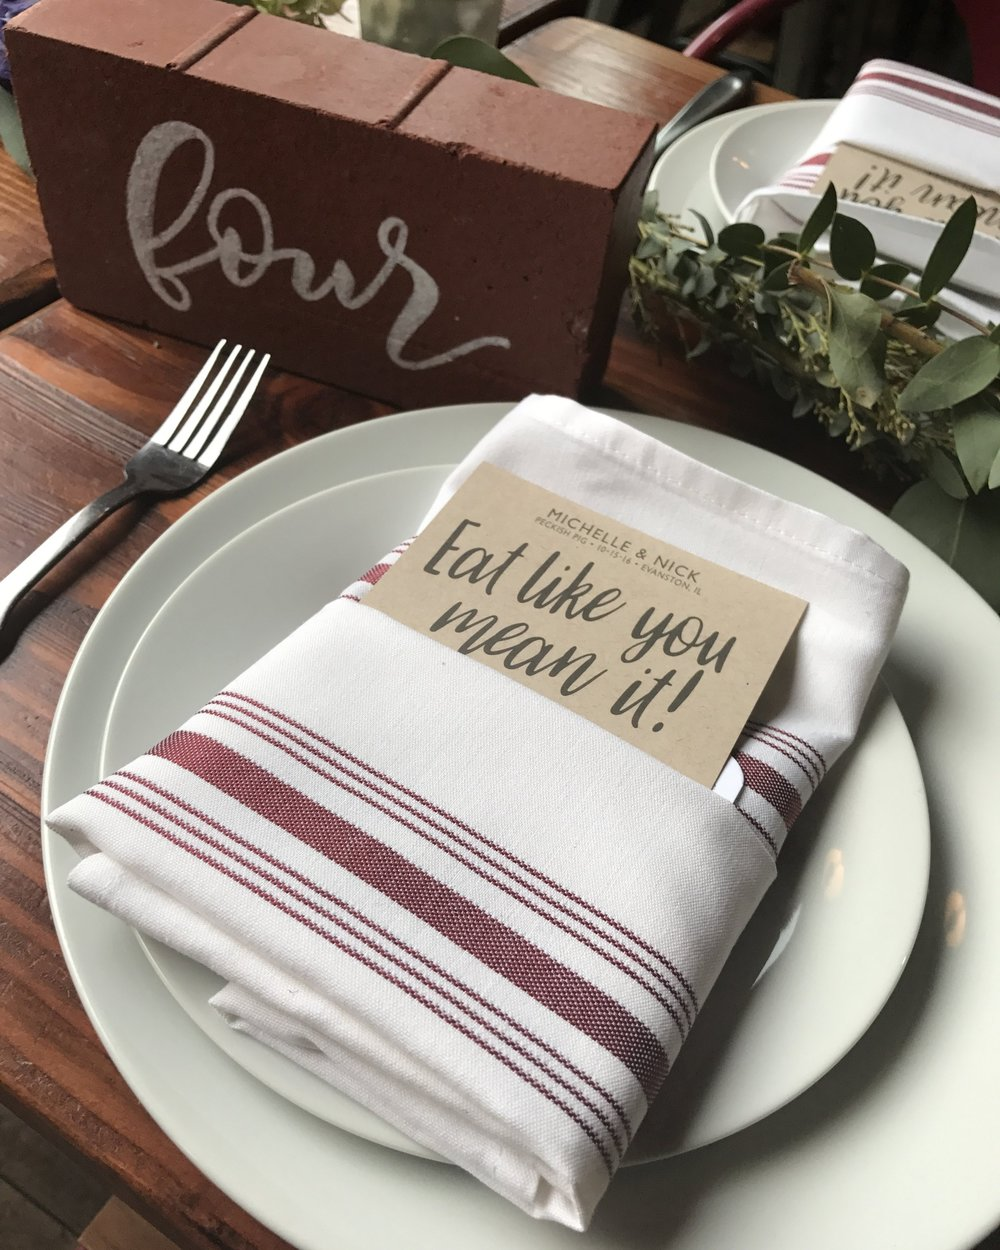 Industrial Chic Wedding Menus with Ferns and Handwritten Calligraphy Font and Instagram Hashtag on Kraft Paper with Charcoal Digital Ink by Ashley Parker Creative